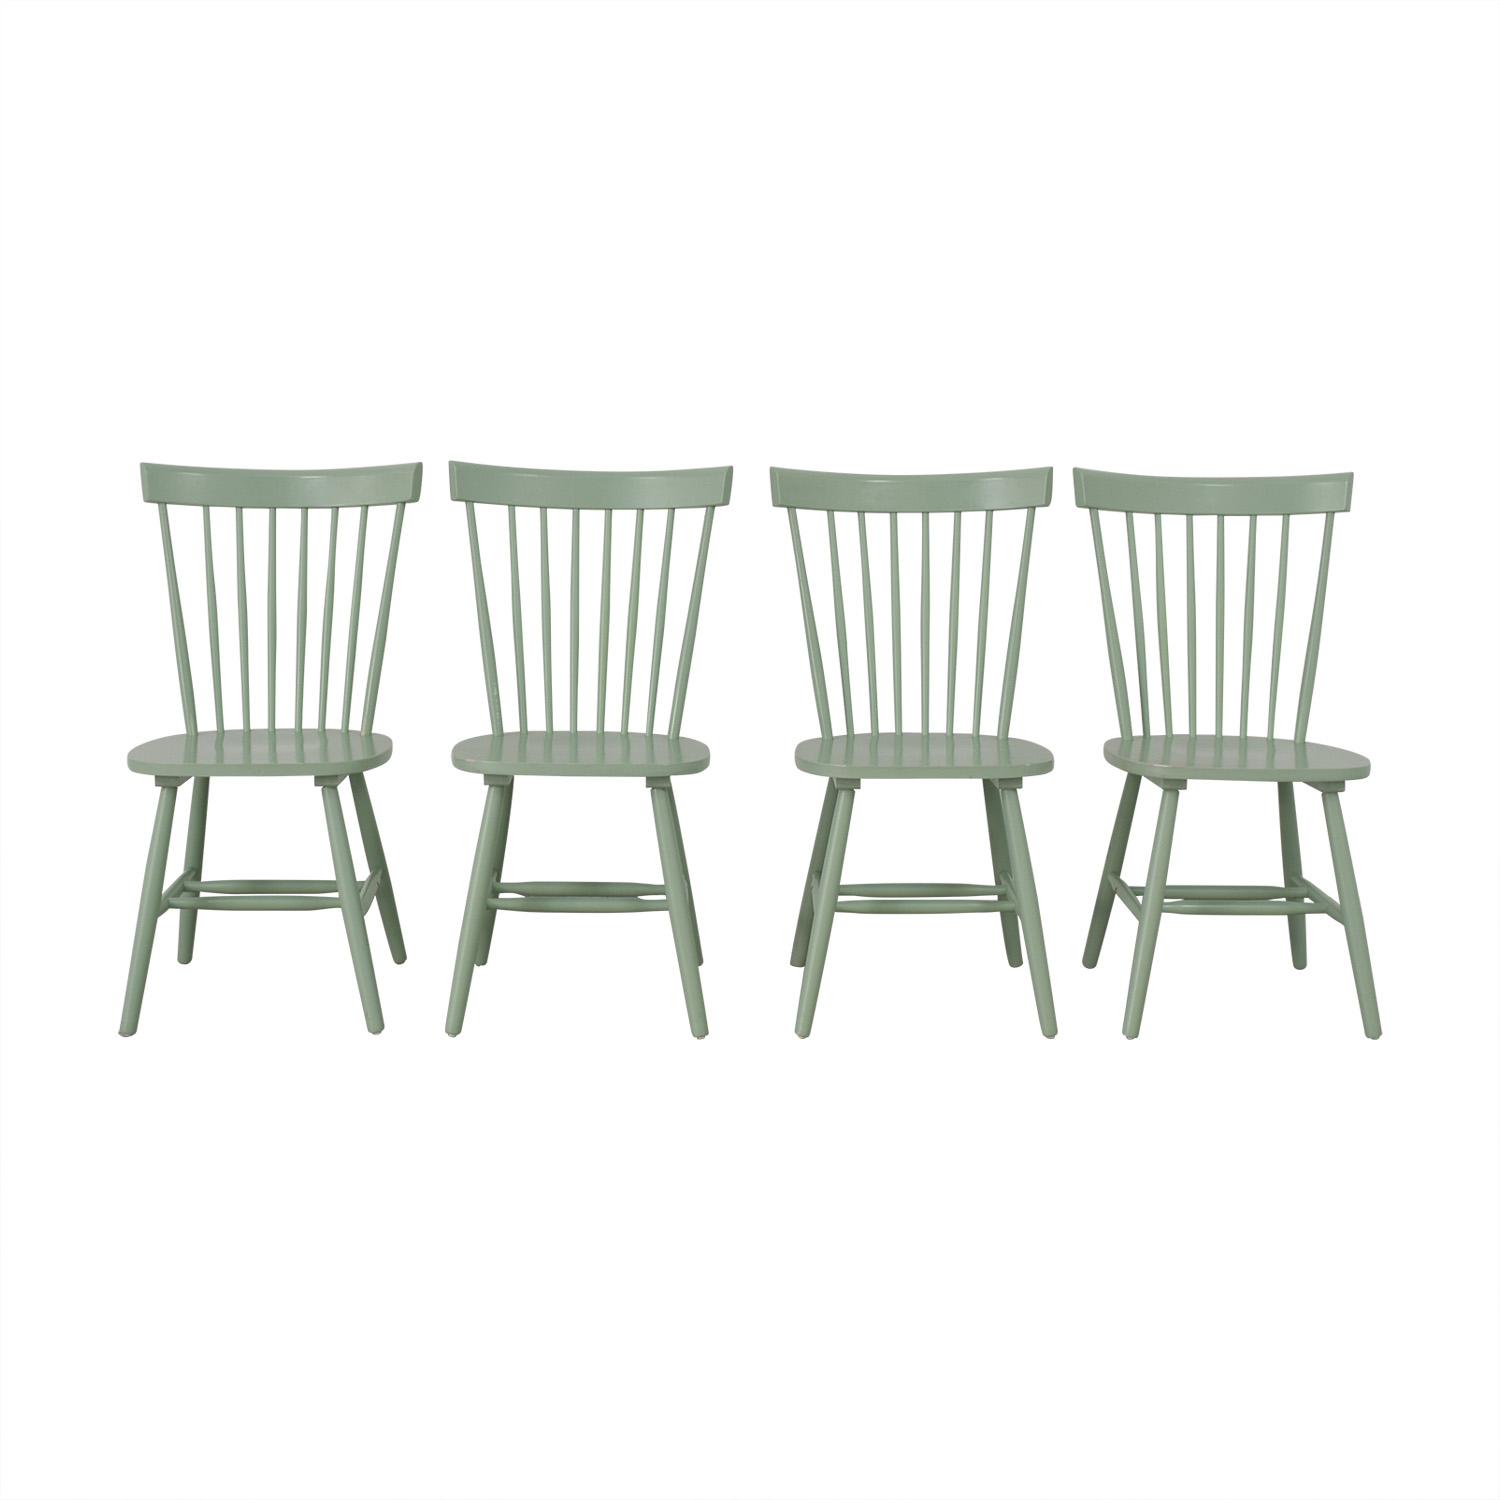 buy Wayfair Green Dining Chairs Wayfair Dining Chairs